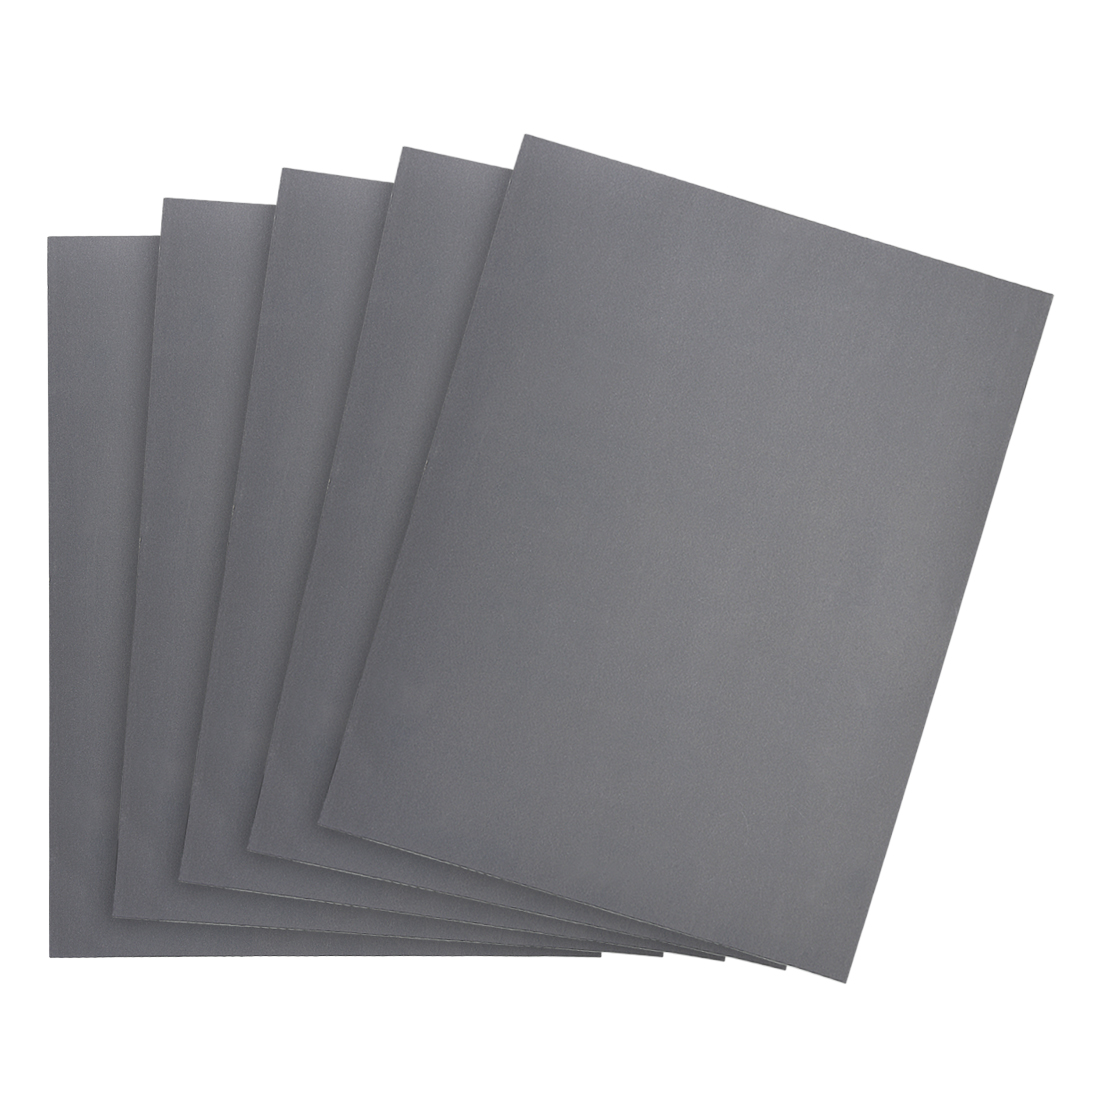 Waterproof Sandpaper, Wet Dry Sand Paper Grit of 1500, 11 x 9inch 5pcs